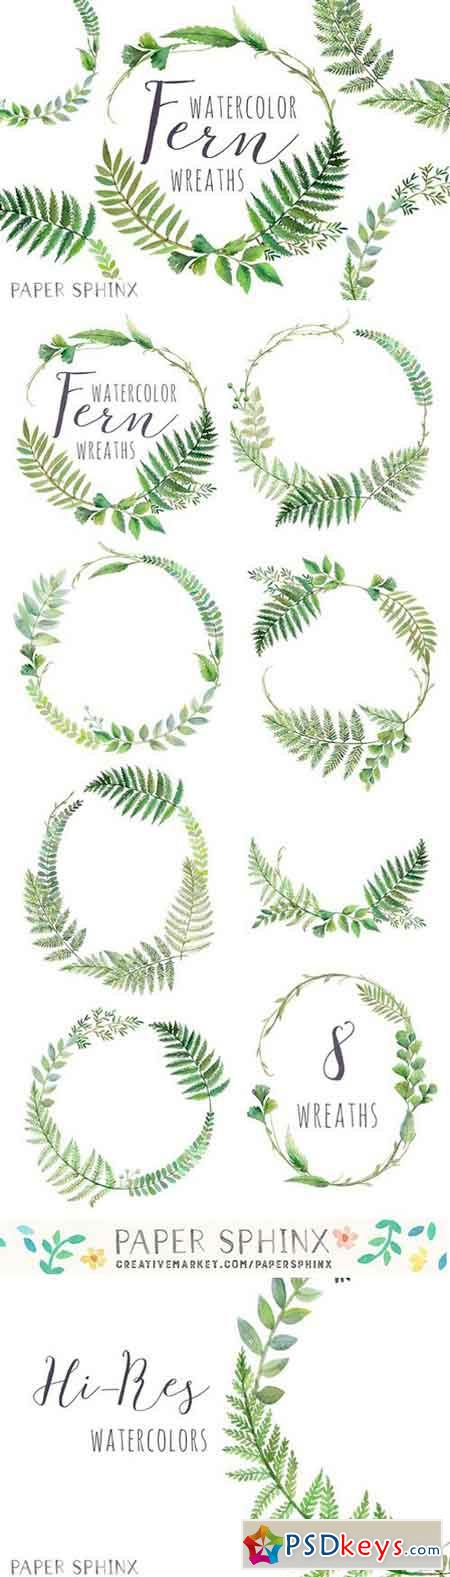 Watercolor Fern Wreaths 2205010